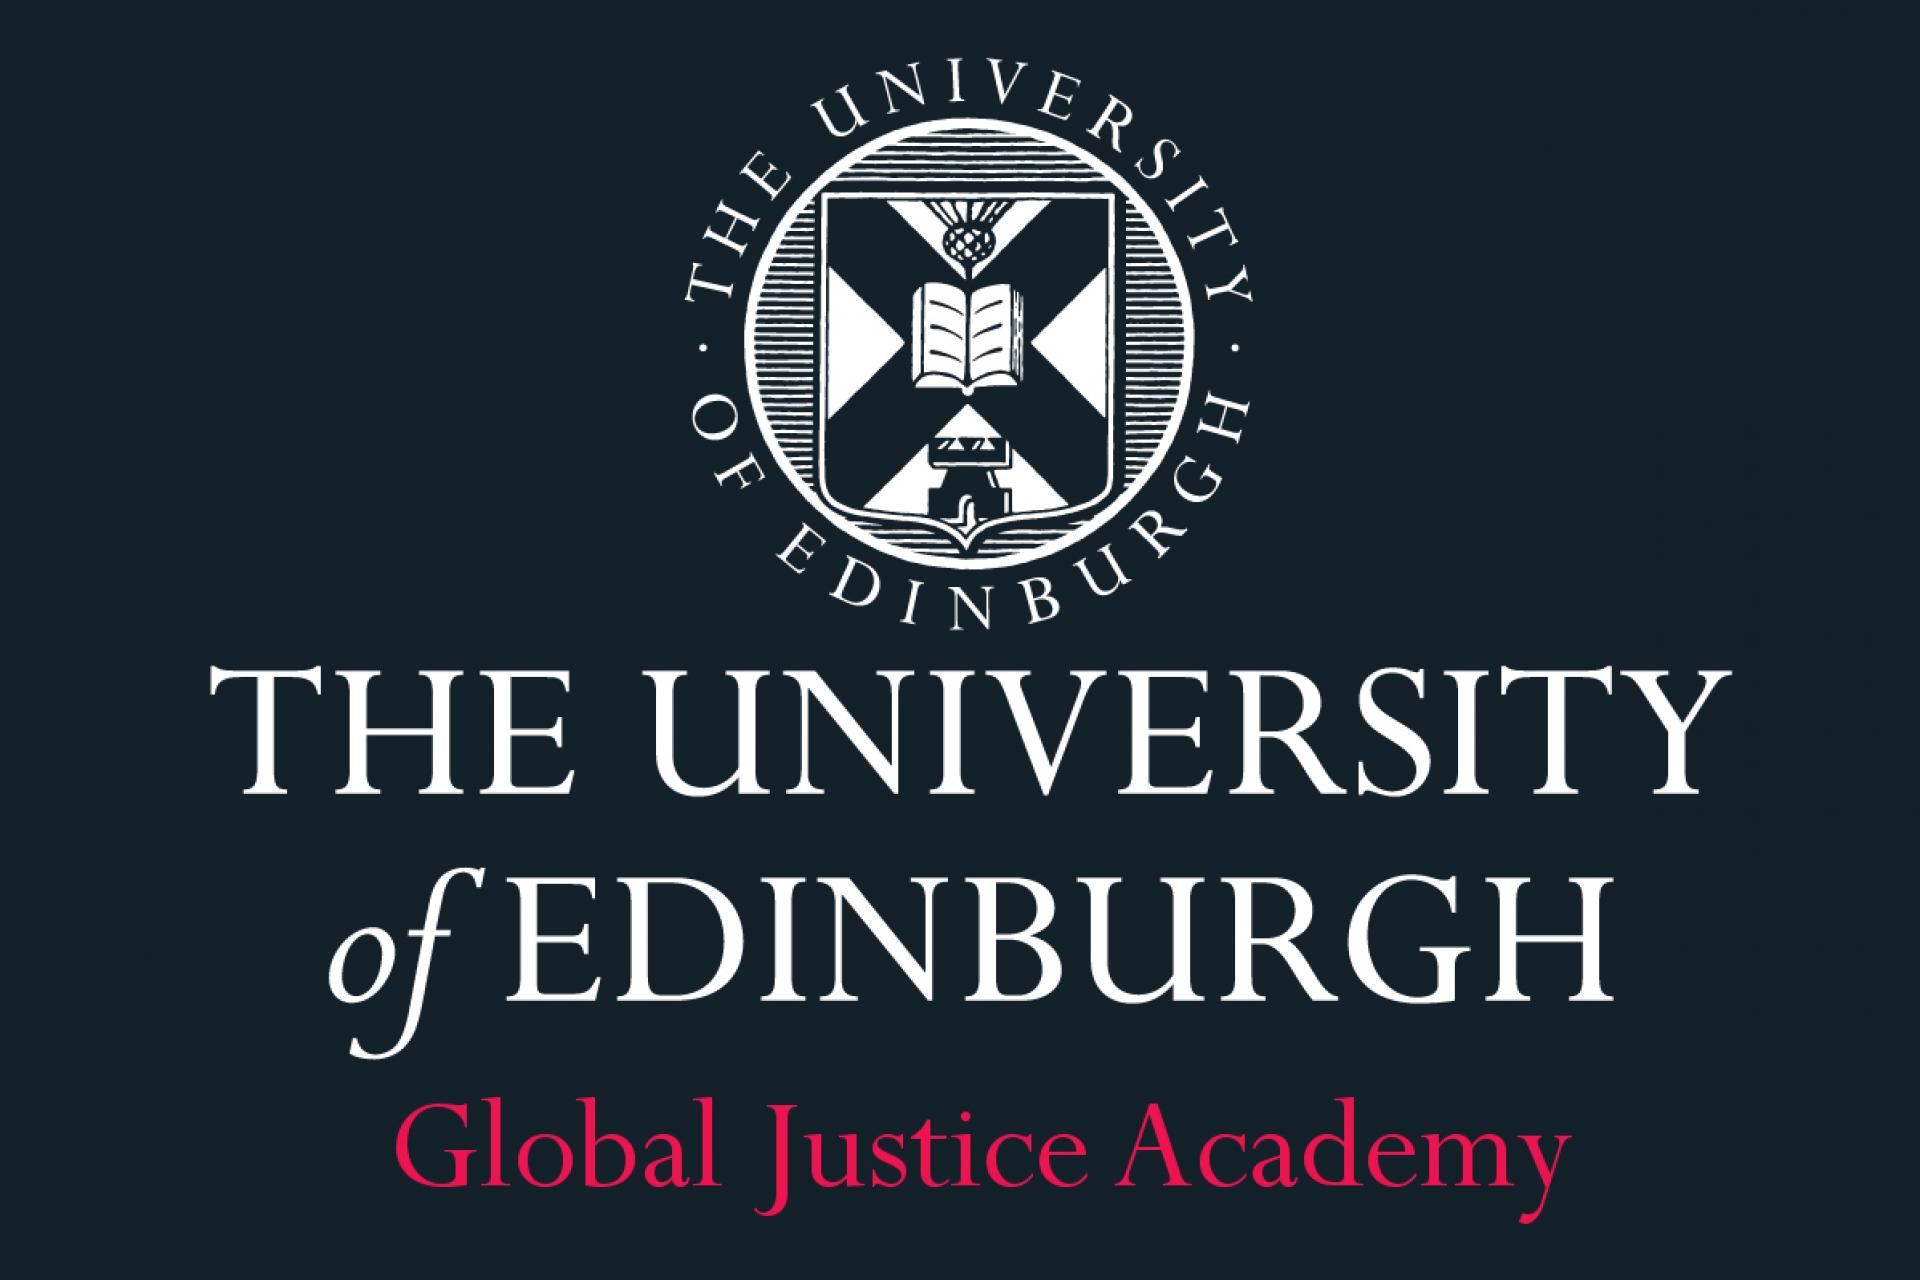 The University of Edinburgh Global Justice Academy logo